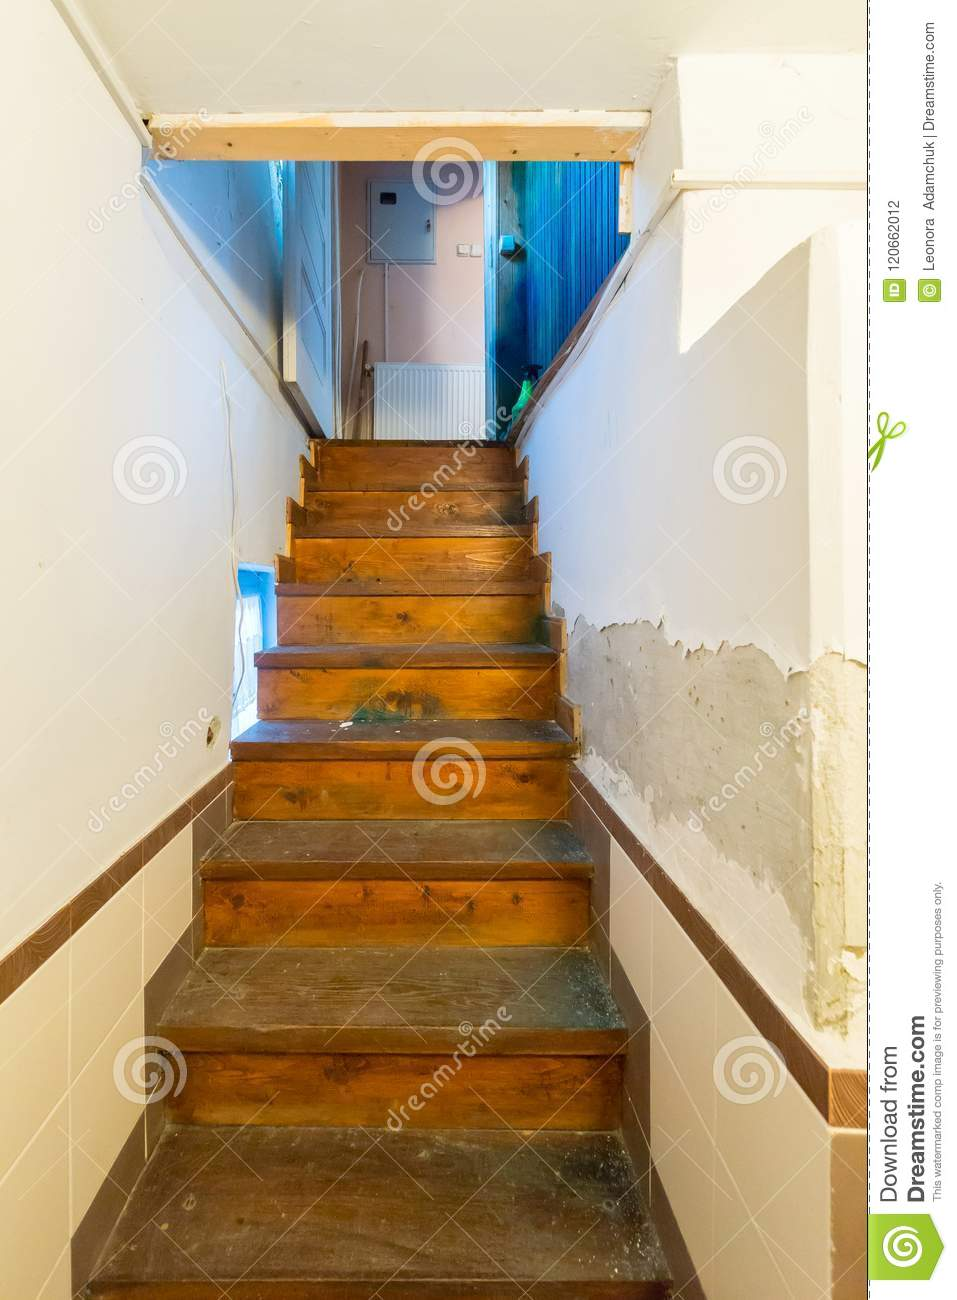 A Narrow Staircase In The Room Leading Up With Wooden Stairs Stock